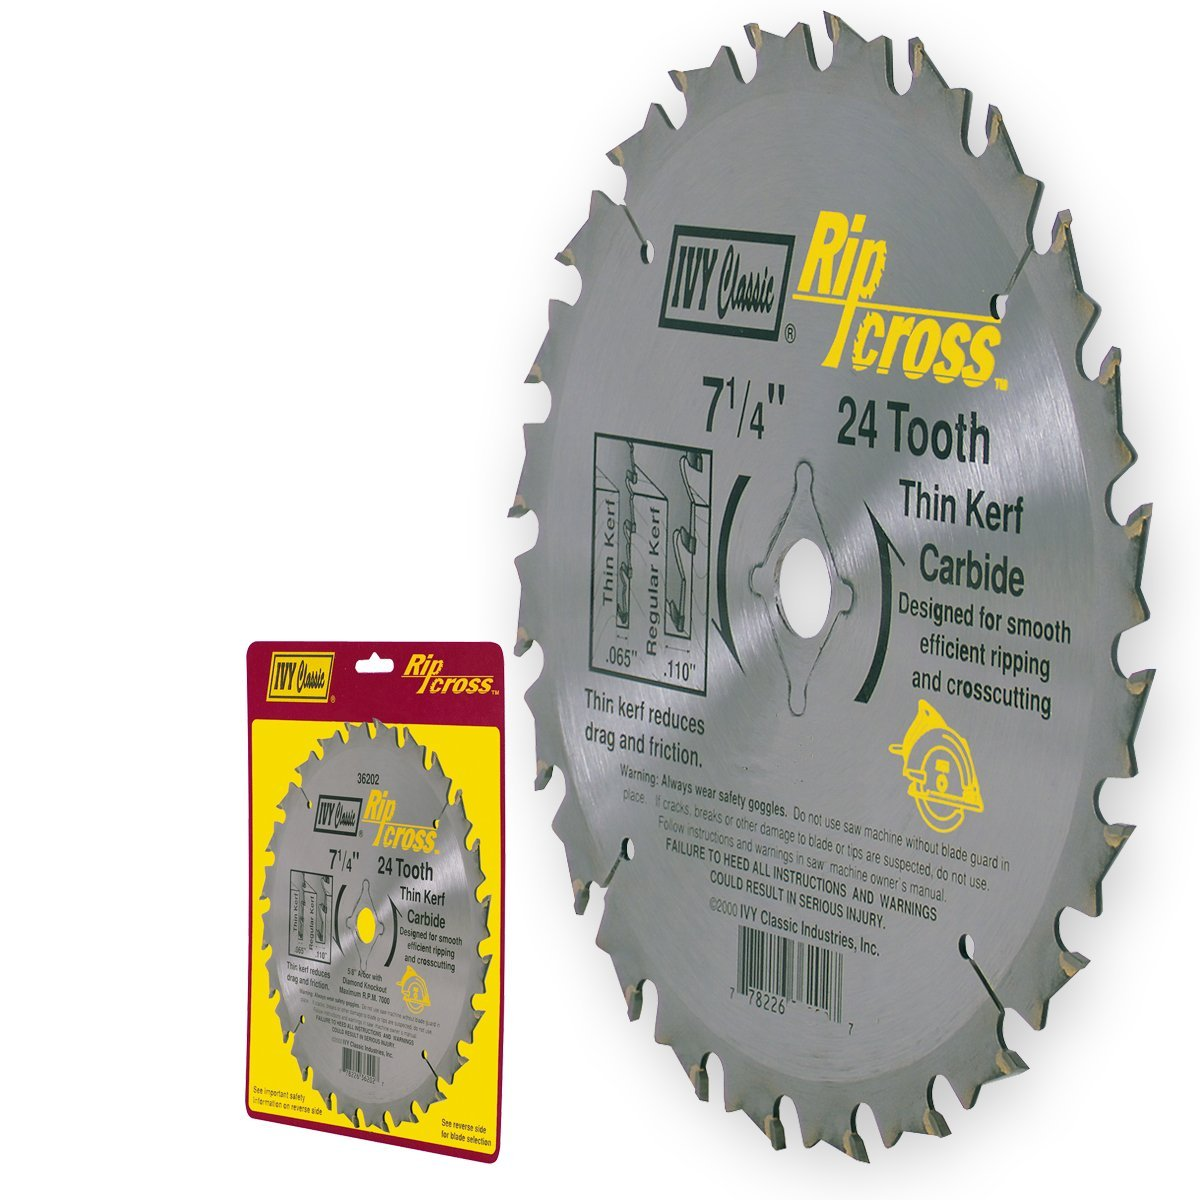 Ivy Classic 36202 Ripcross 24 Tooth Thin Kerf Carbide Circular Saw Blade with 5/8-Inch Diamond Knockout Arbor, 1/Card, 7-1/4-Inch